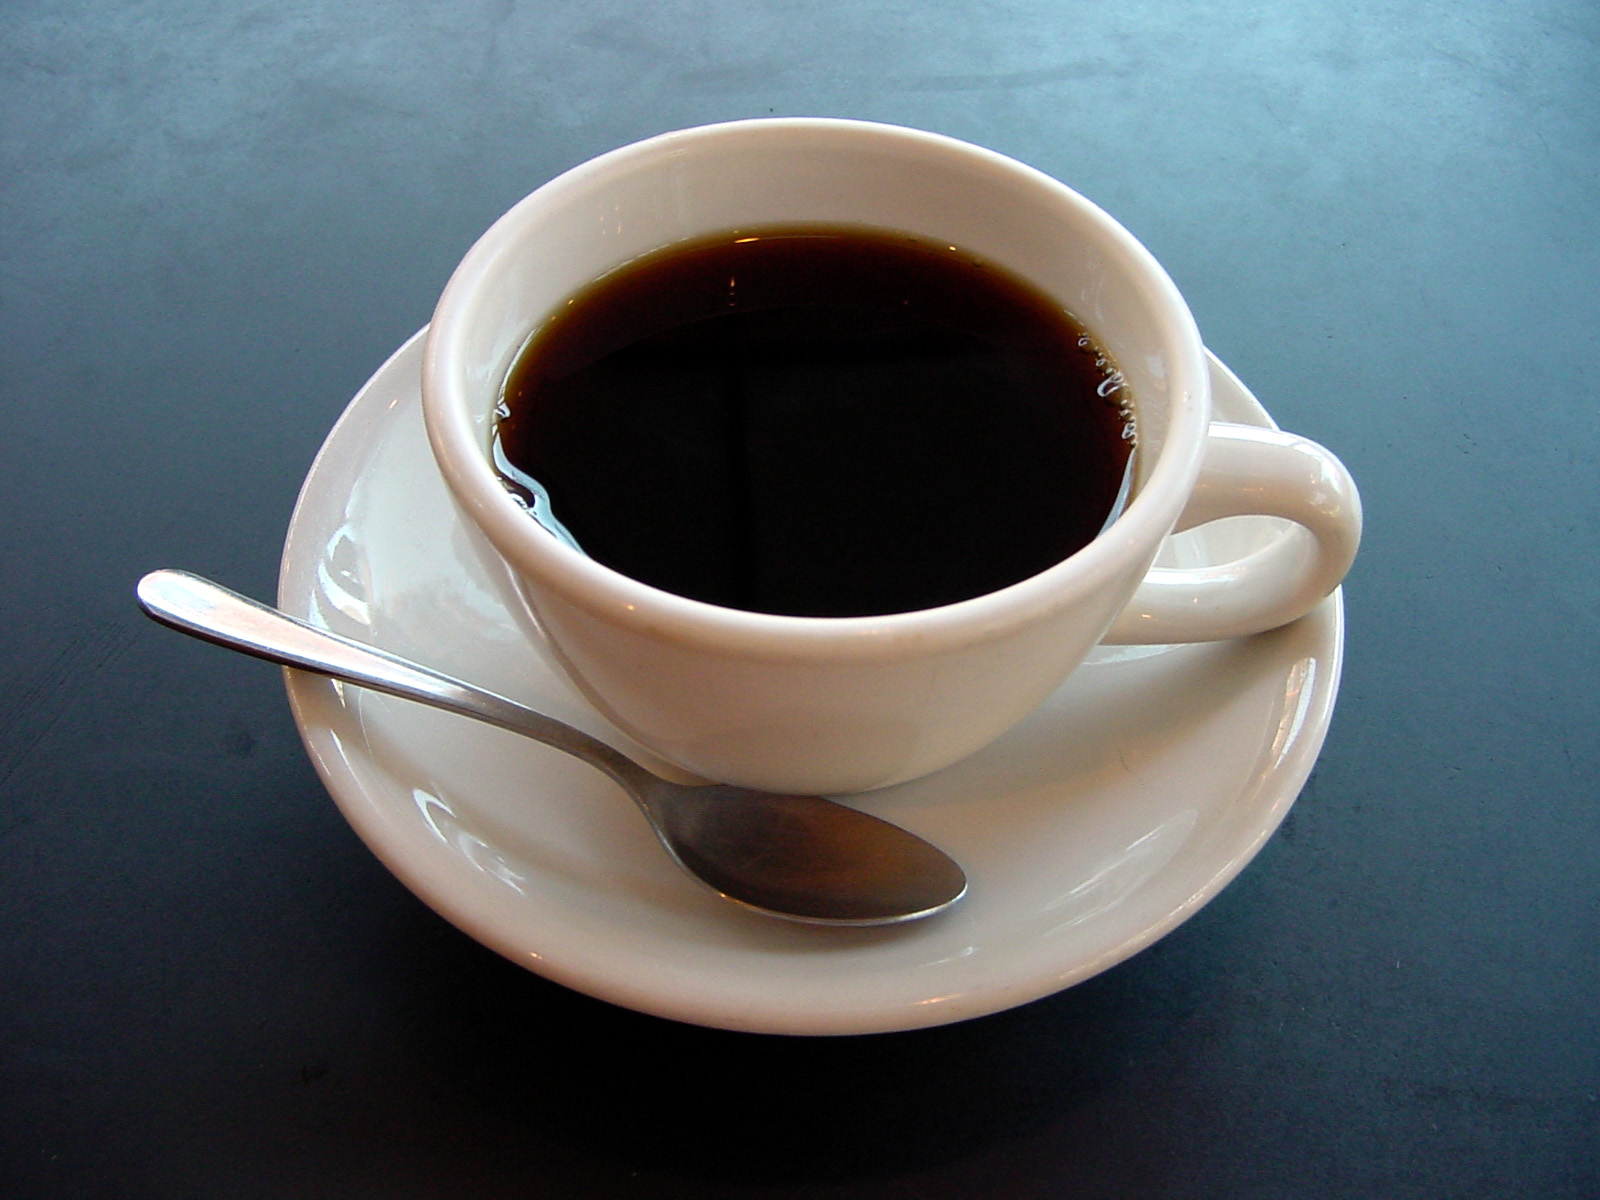 A_small_cup_of_coffee_225190